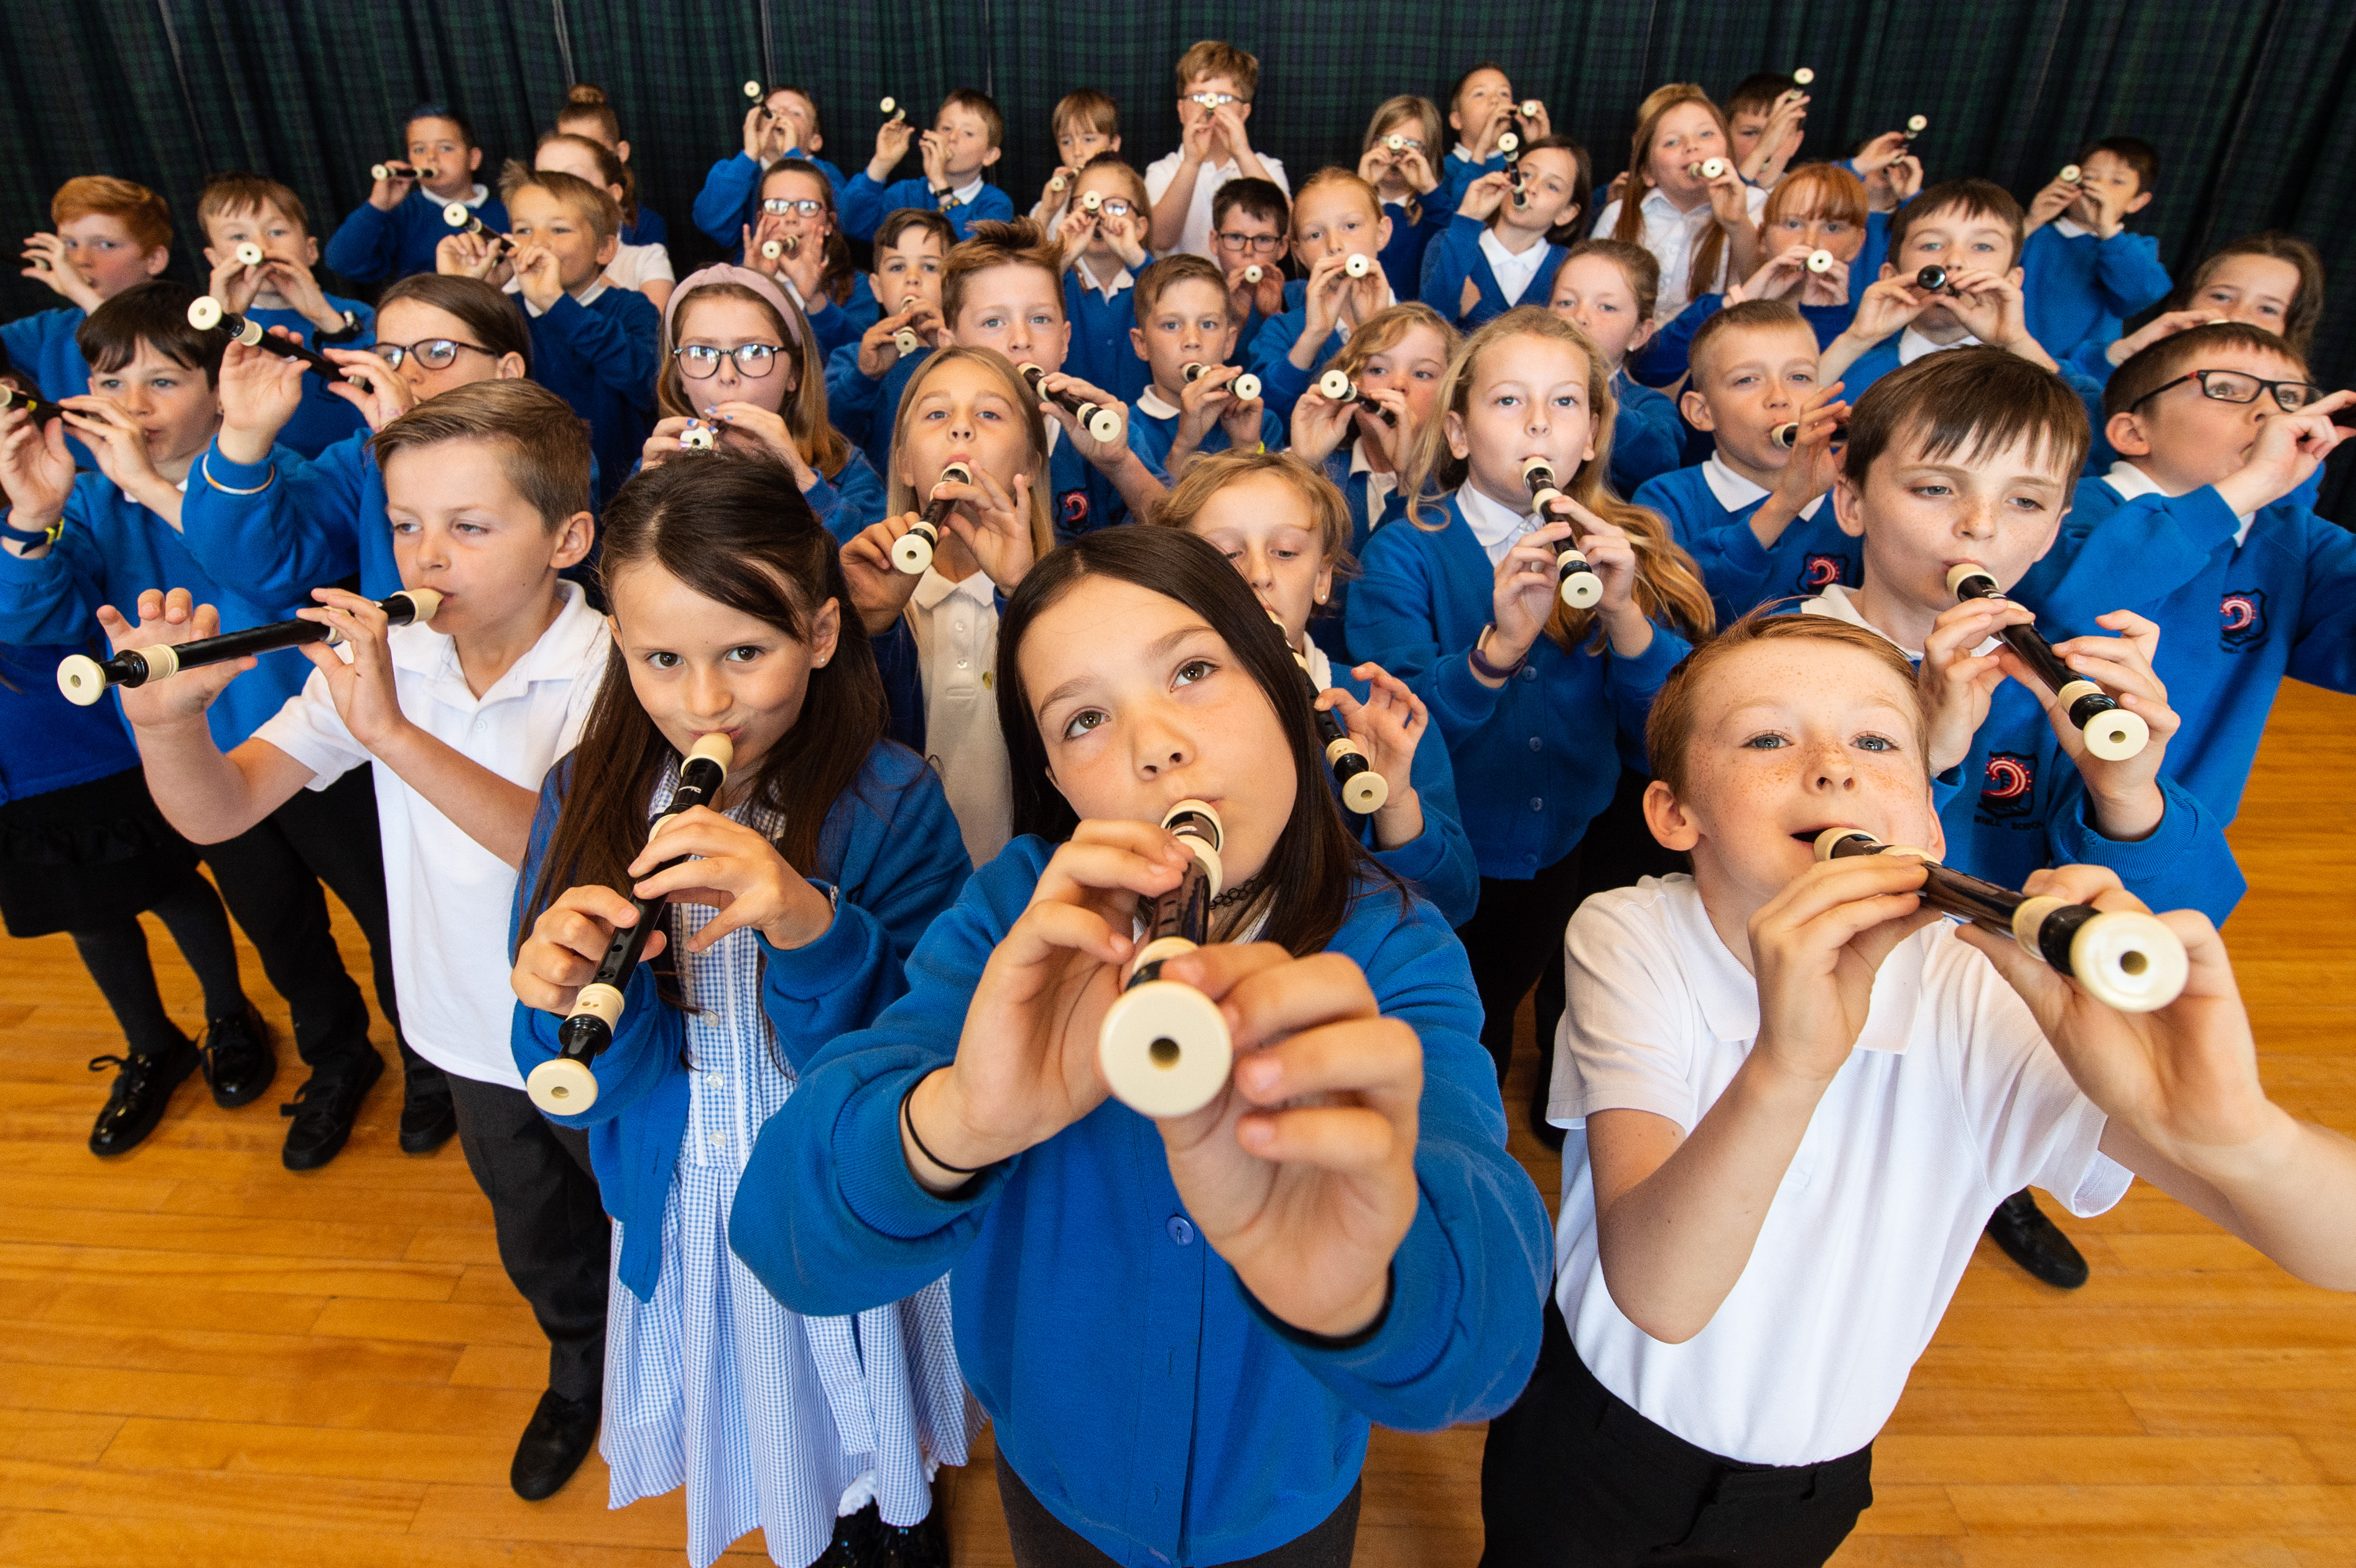 Hythehil Primary School pupils are learning the recorder.